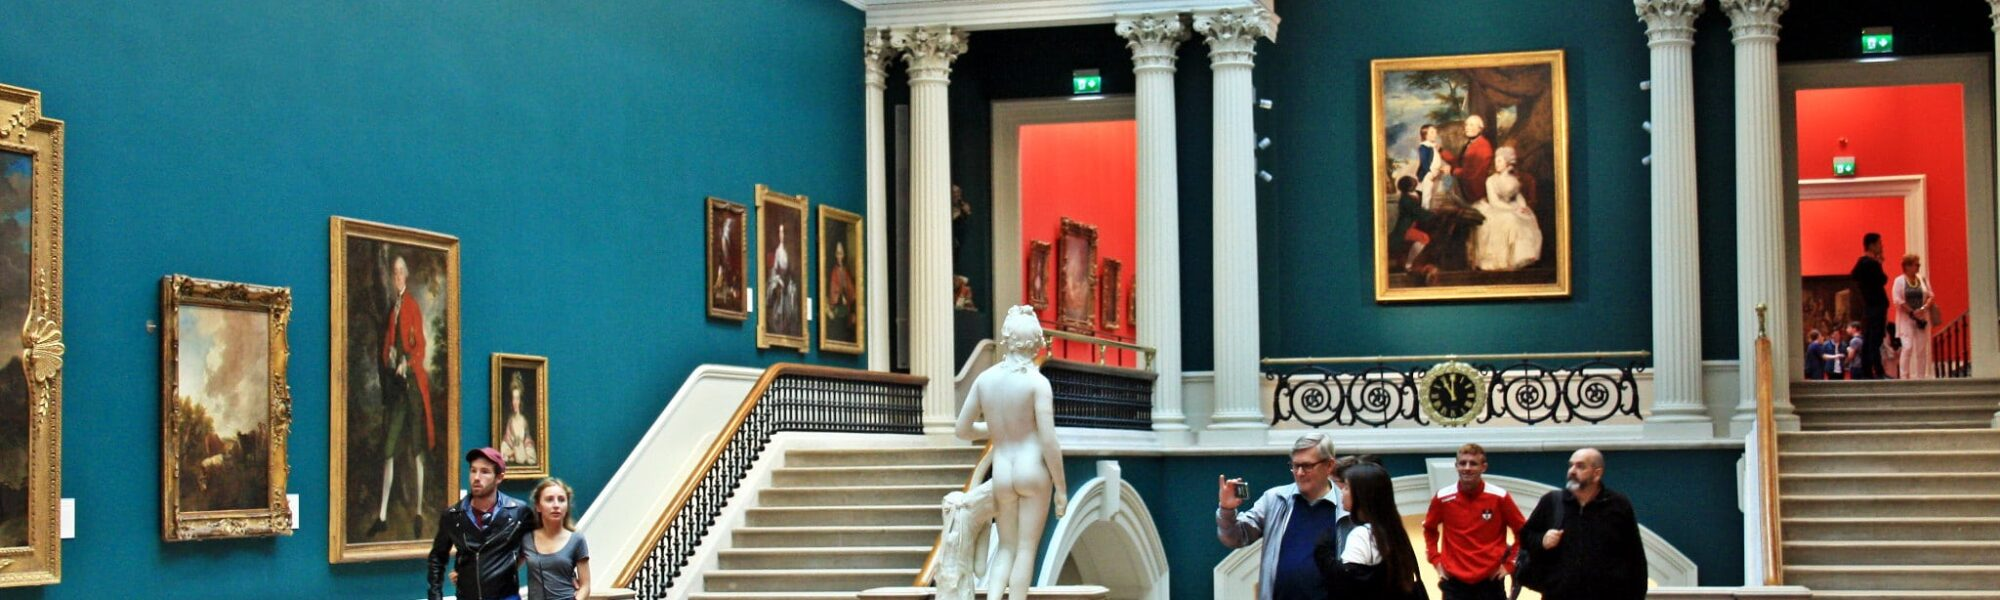 National Gallery of Ireland - A guy called John - cc